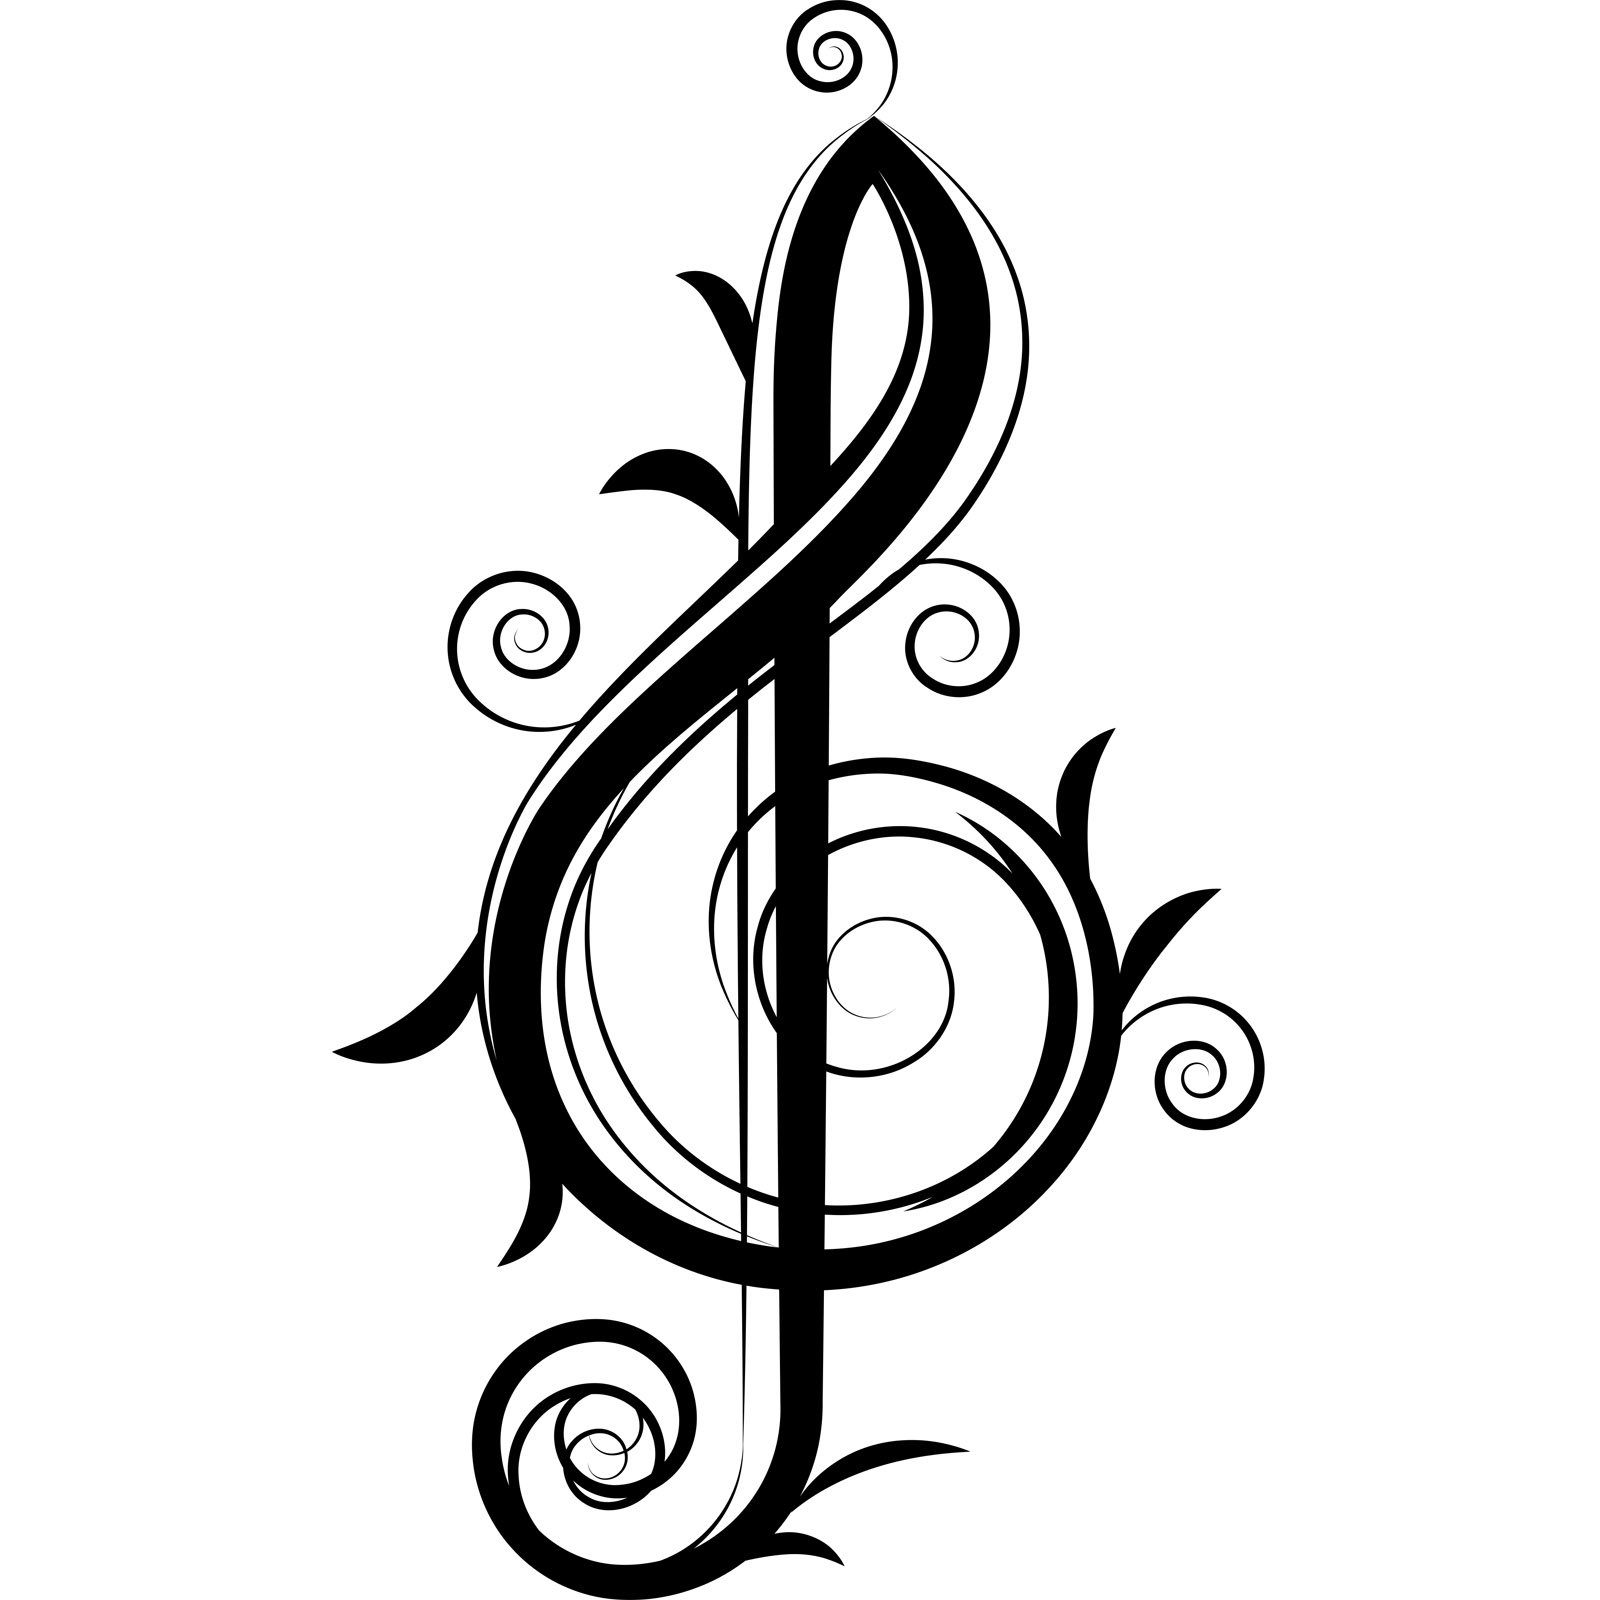 Fancy Teble Clef Musical Wall Sticker World of Wall Stickers : 11472 Size from world-of-wall-stickers.com size 1600 x 1600 jpeg 170kB